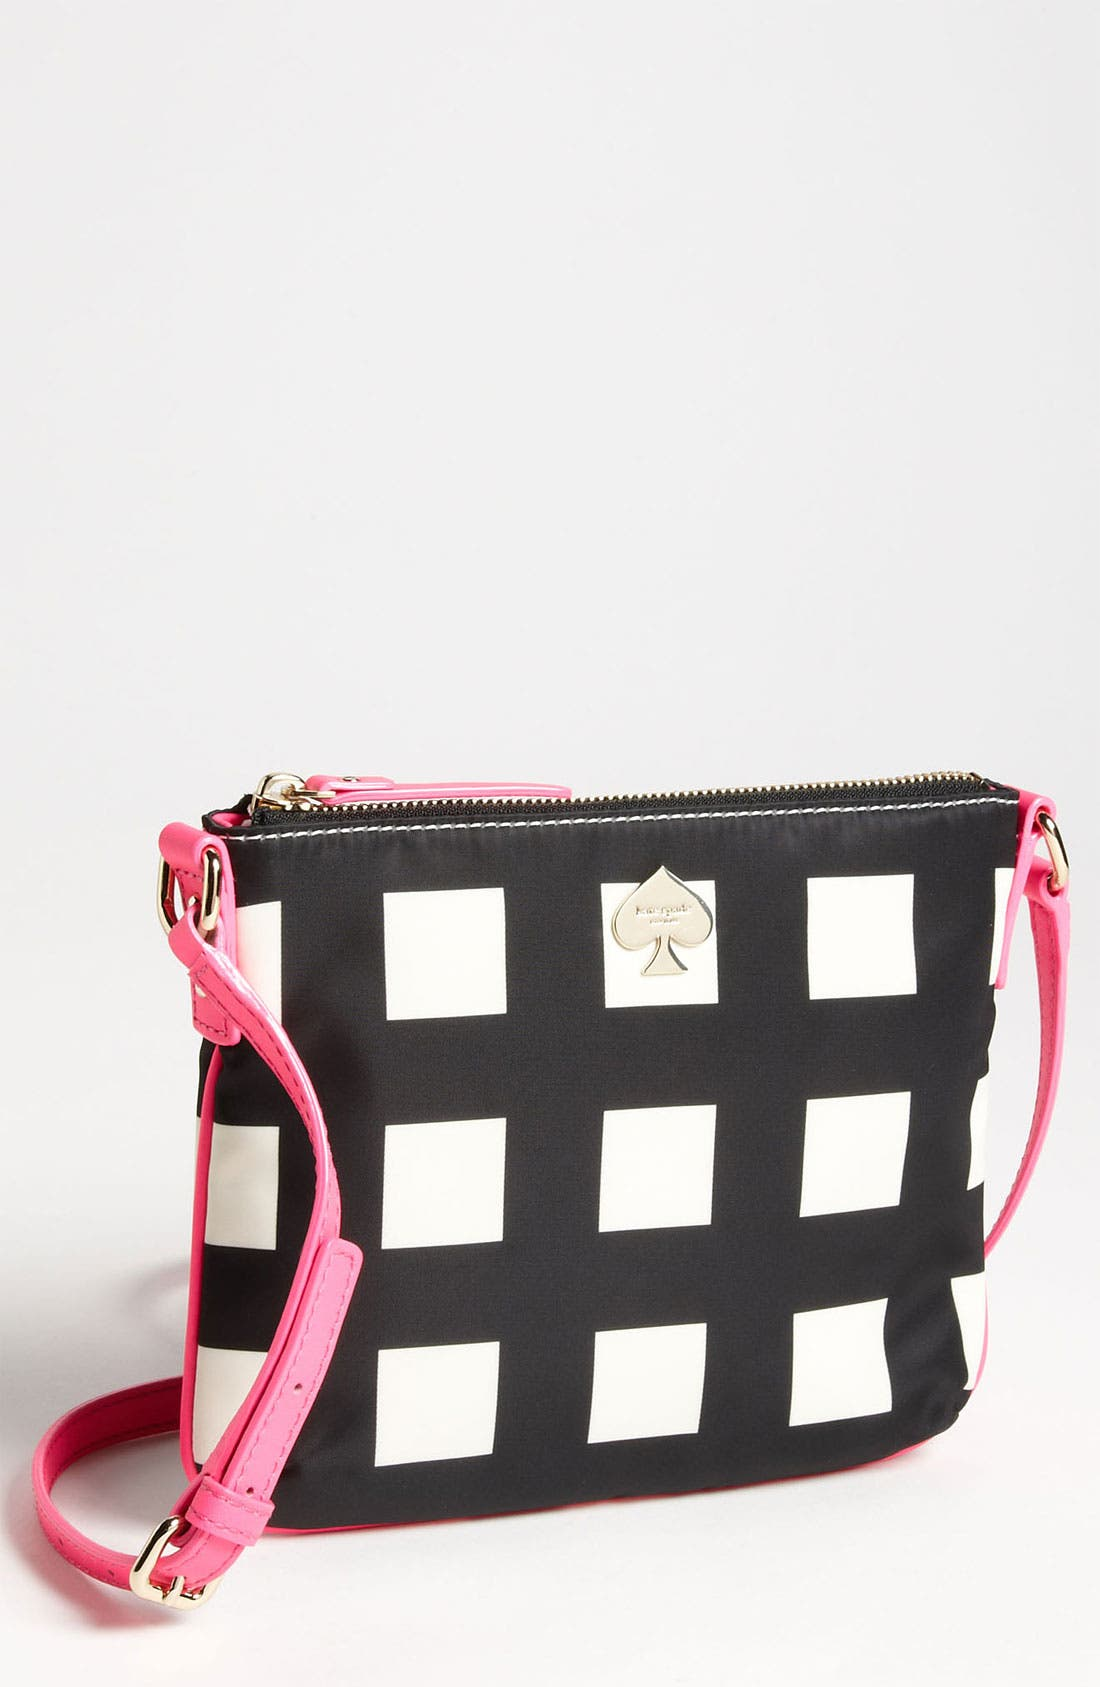 Alternate Image 1 Selected - kate spade new york 'berry street - tenley' crossbody bag